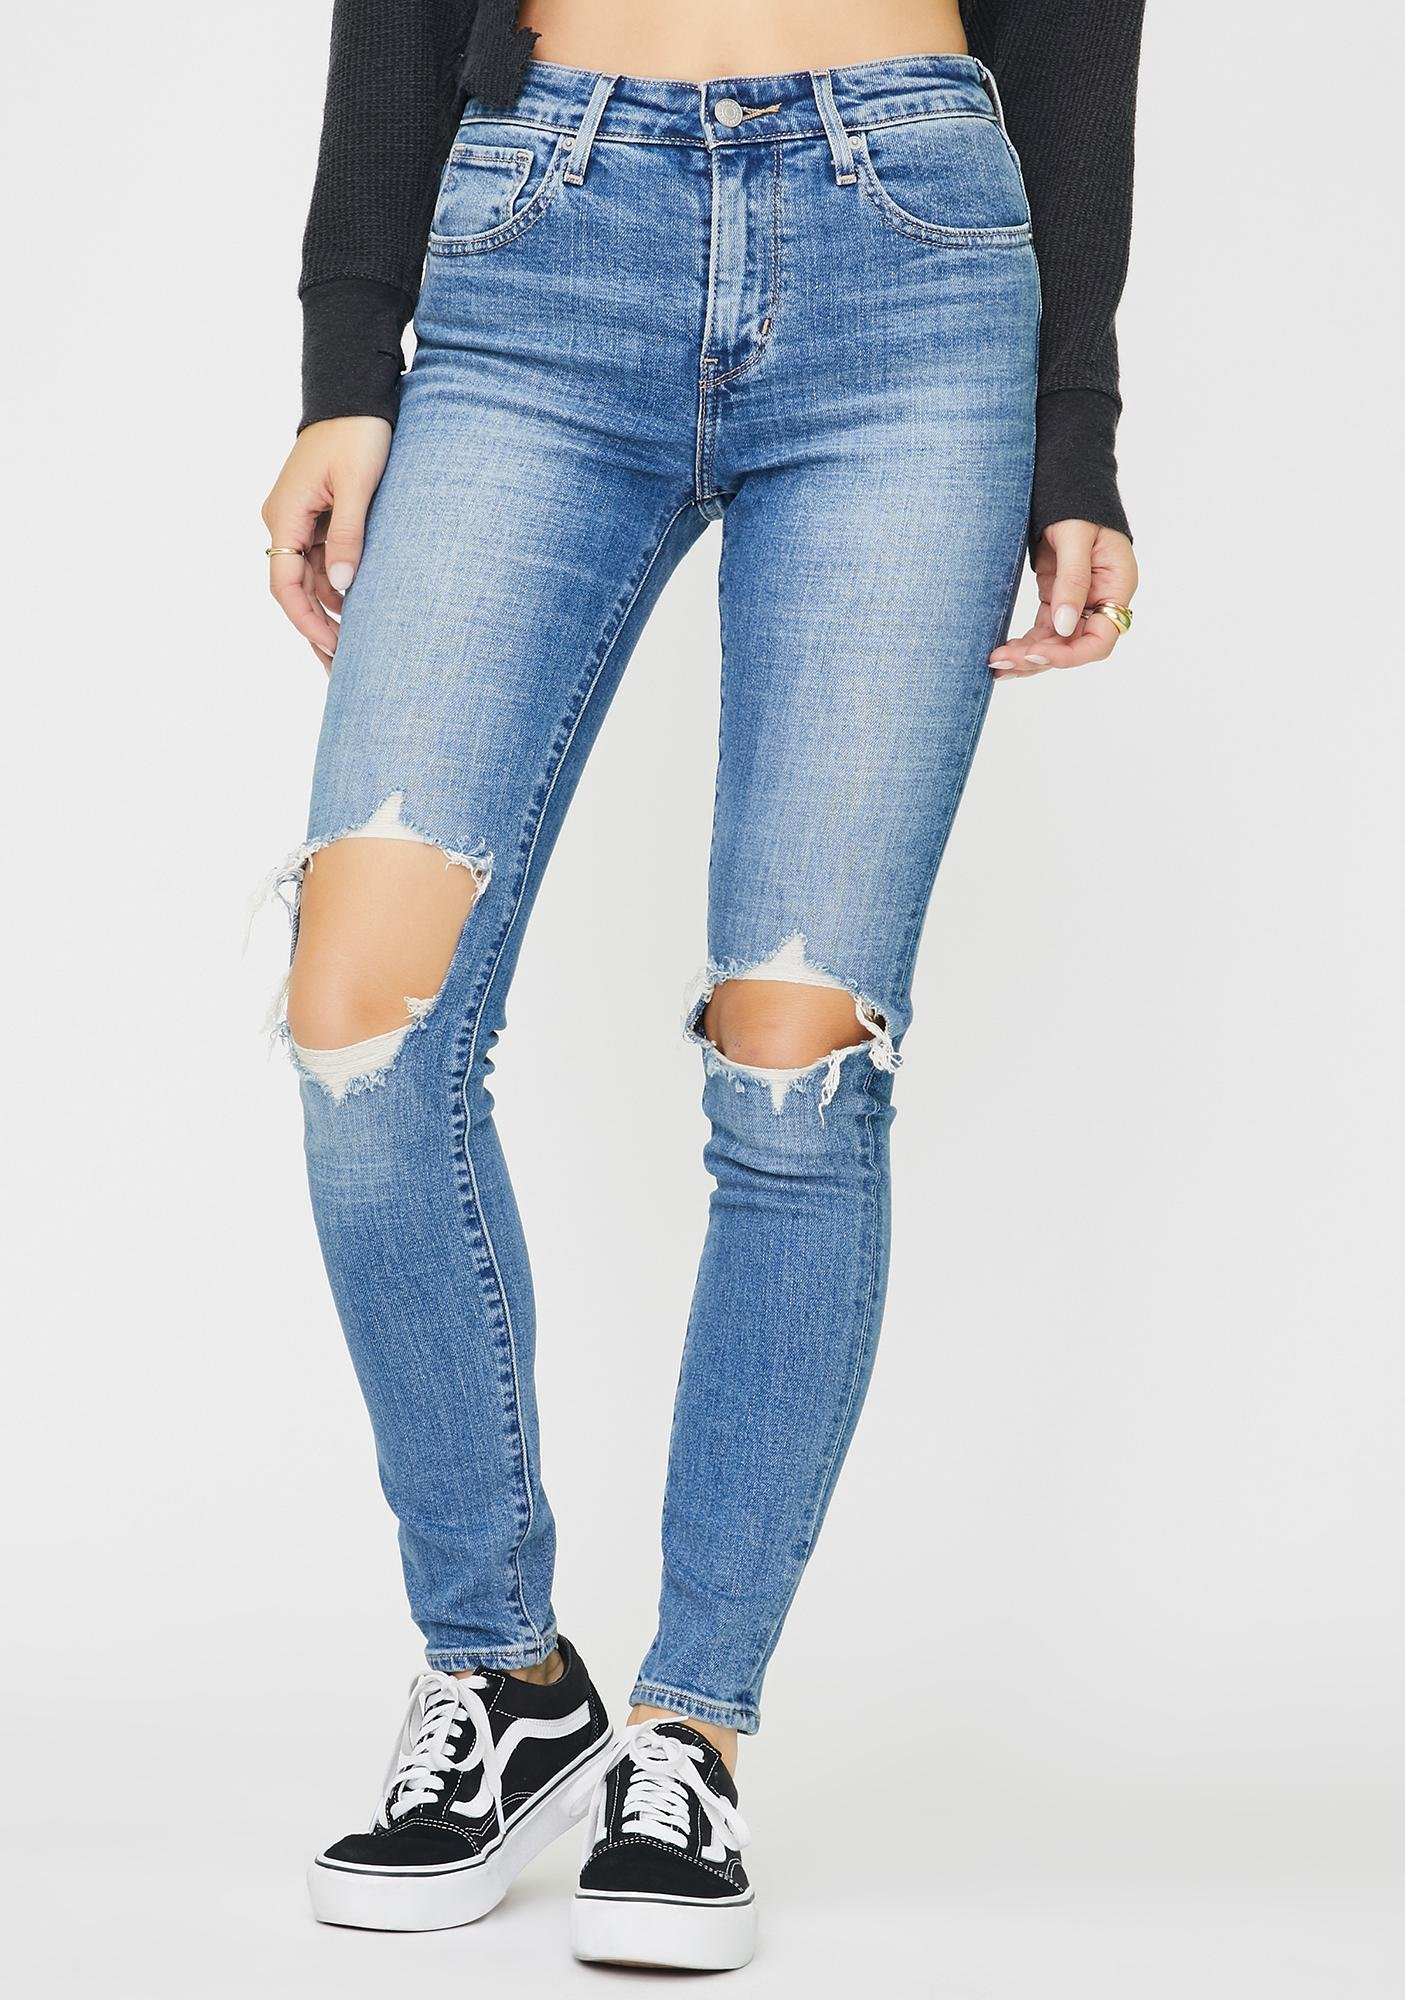 Levis Rugged Indigo 721 High Rise Skinny Jeans